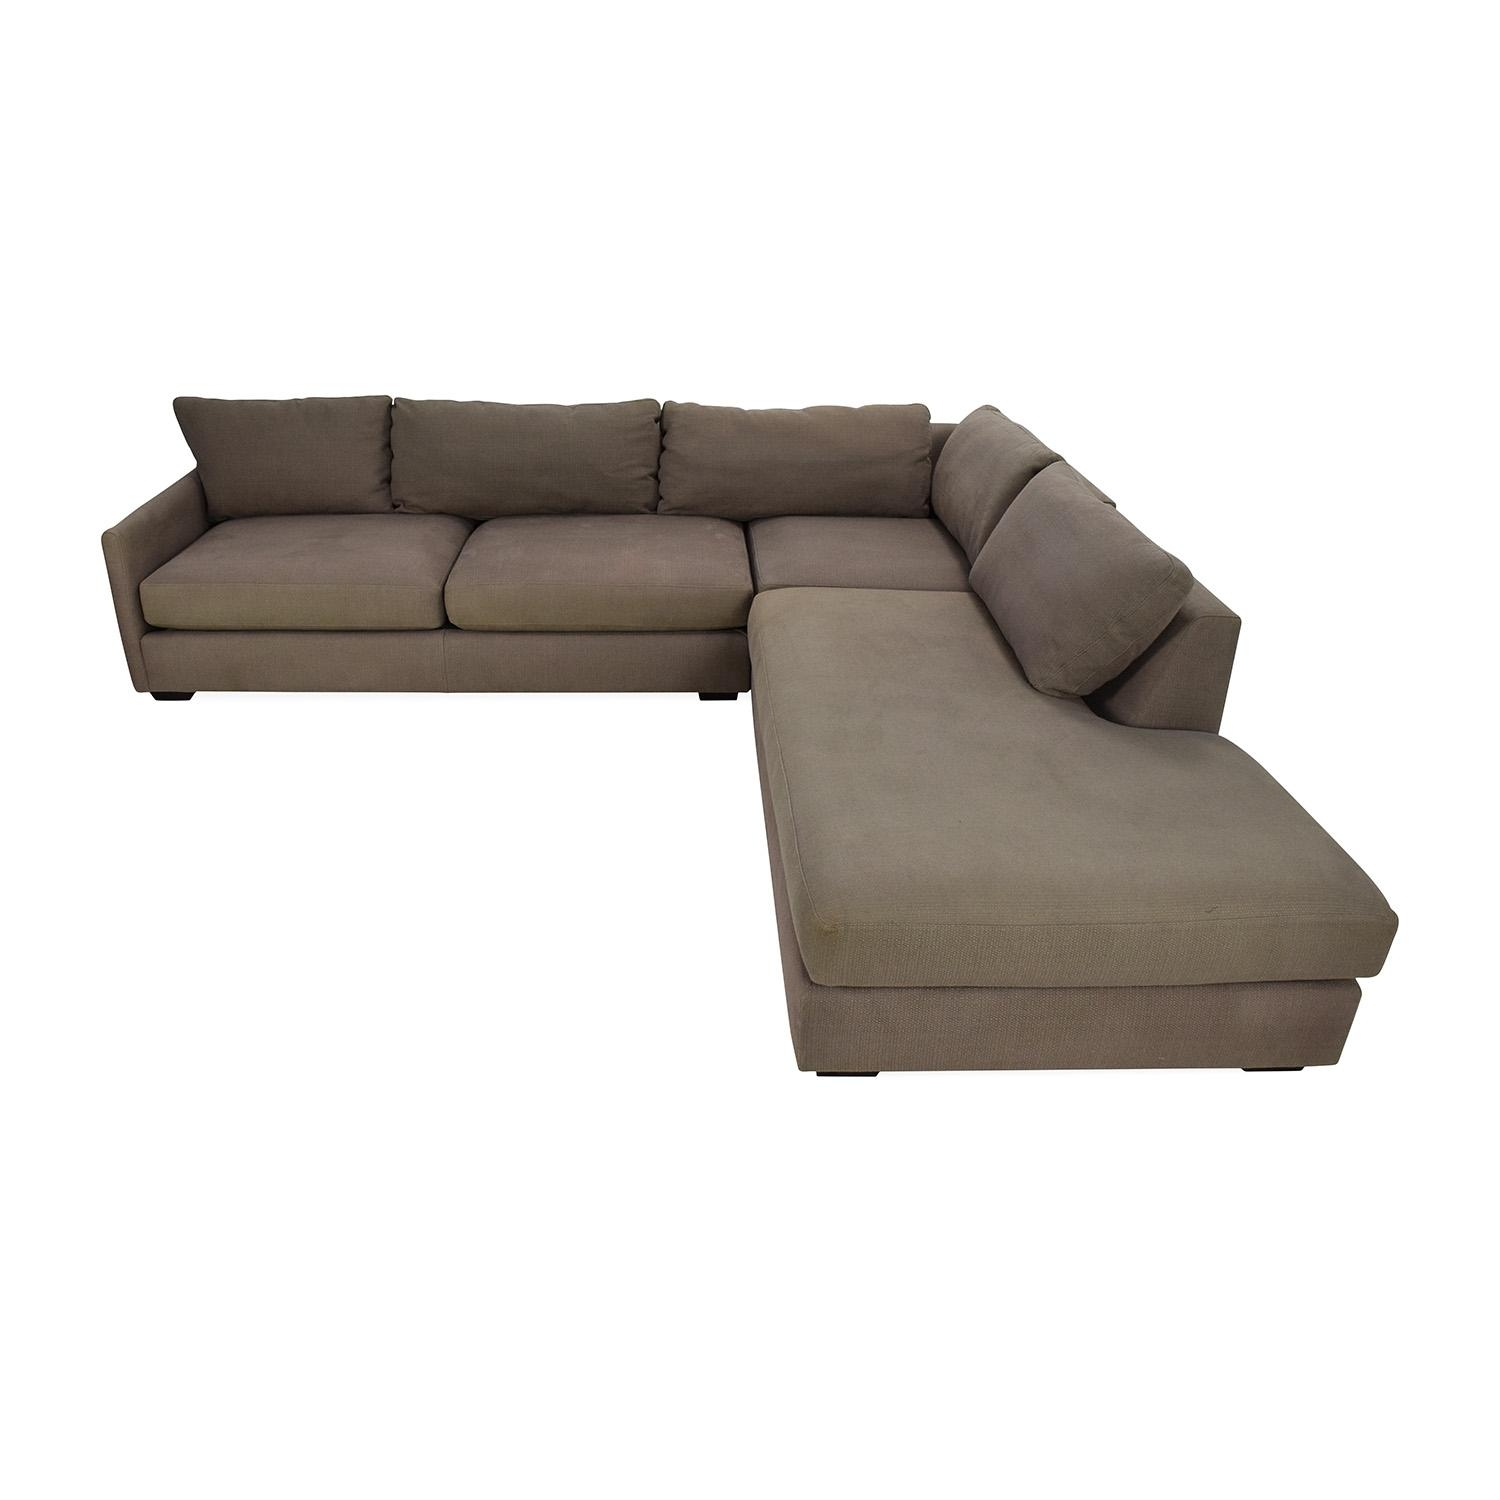 82% Off - Crate And Barrel Crate & Barrel Domino Sectional Sofa pertaining to Crate and Barrel Sectional